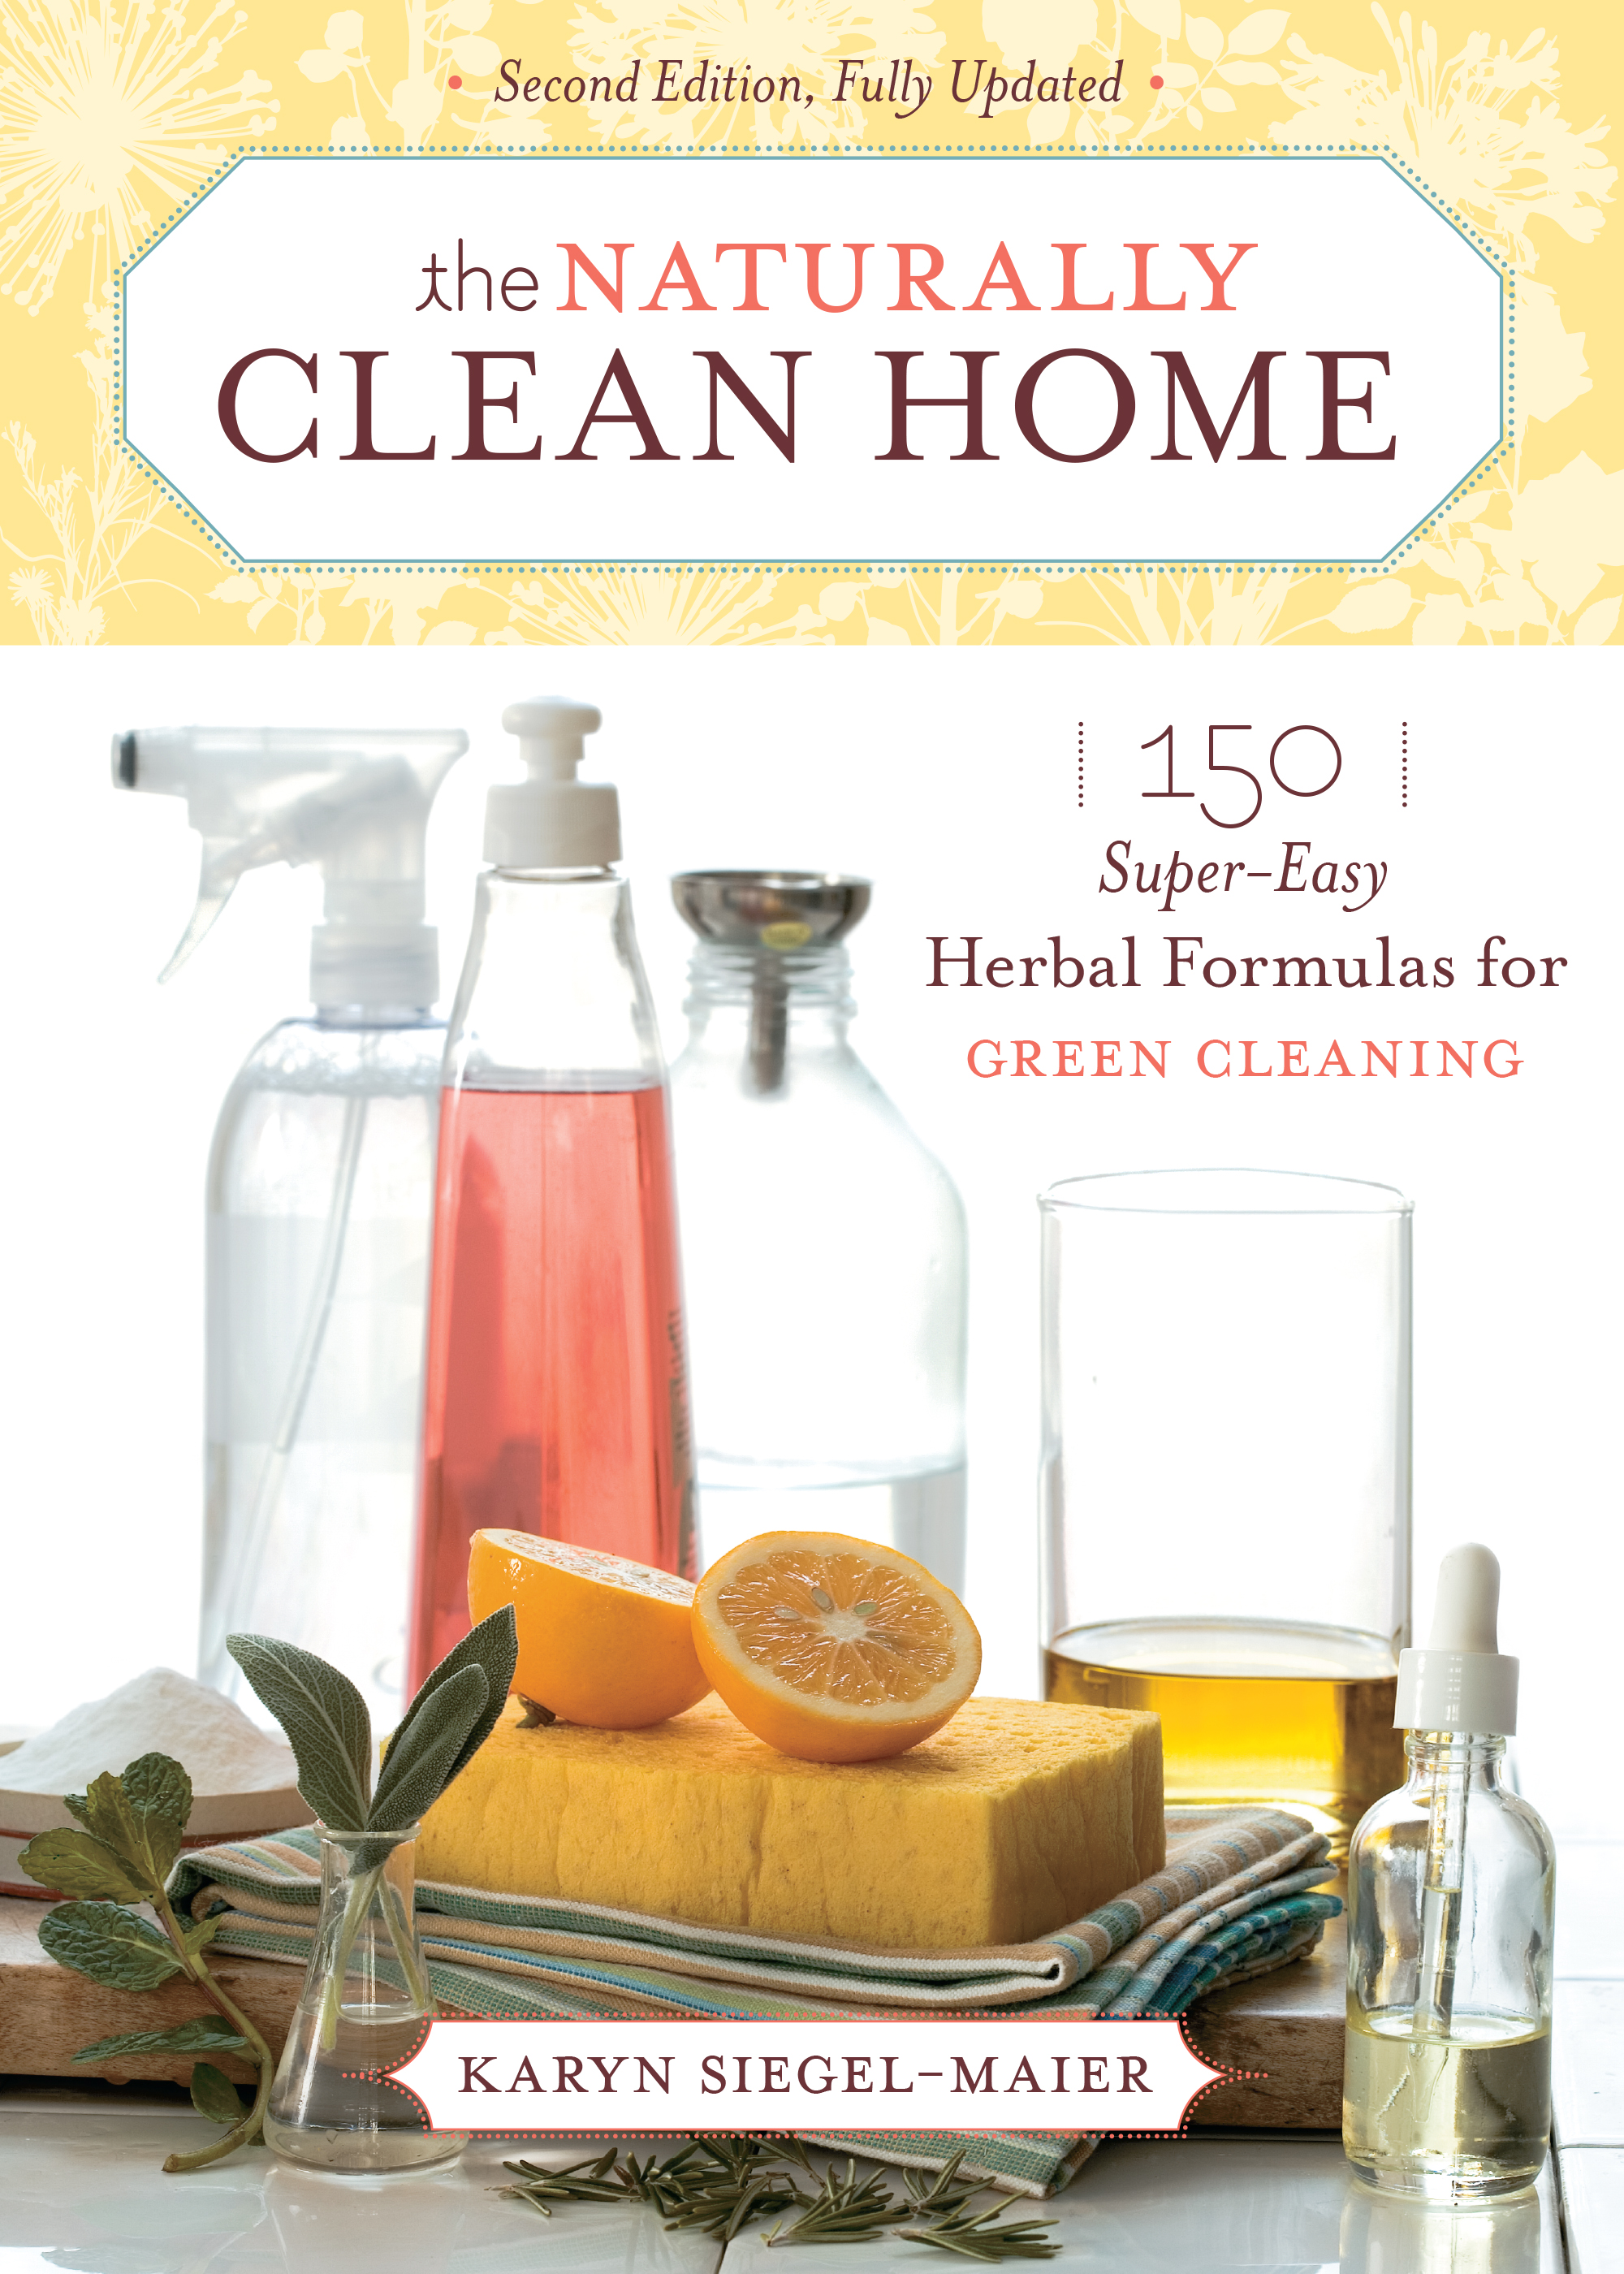 The Naturally Clean Home 150 Super-Easy Herbal Formulas for Green Cleaning - Karyn Siegel-Maier